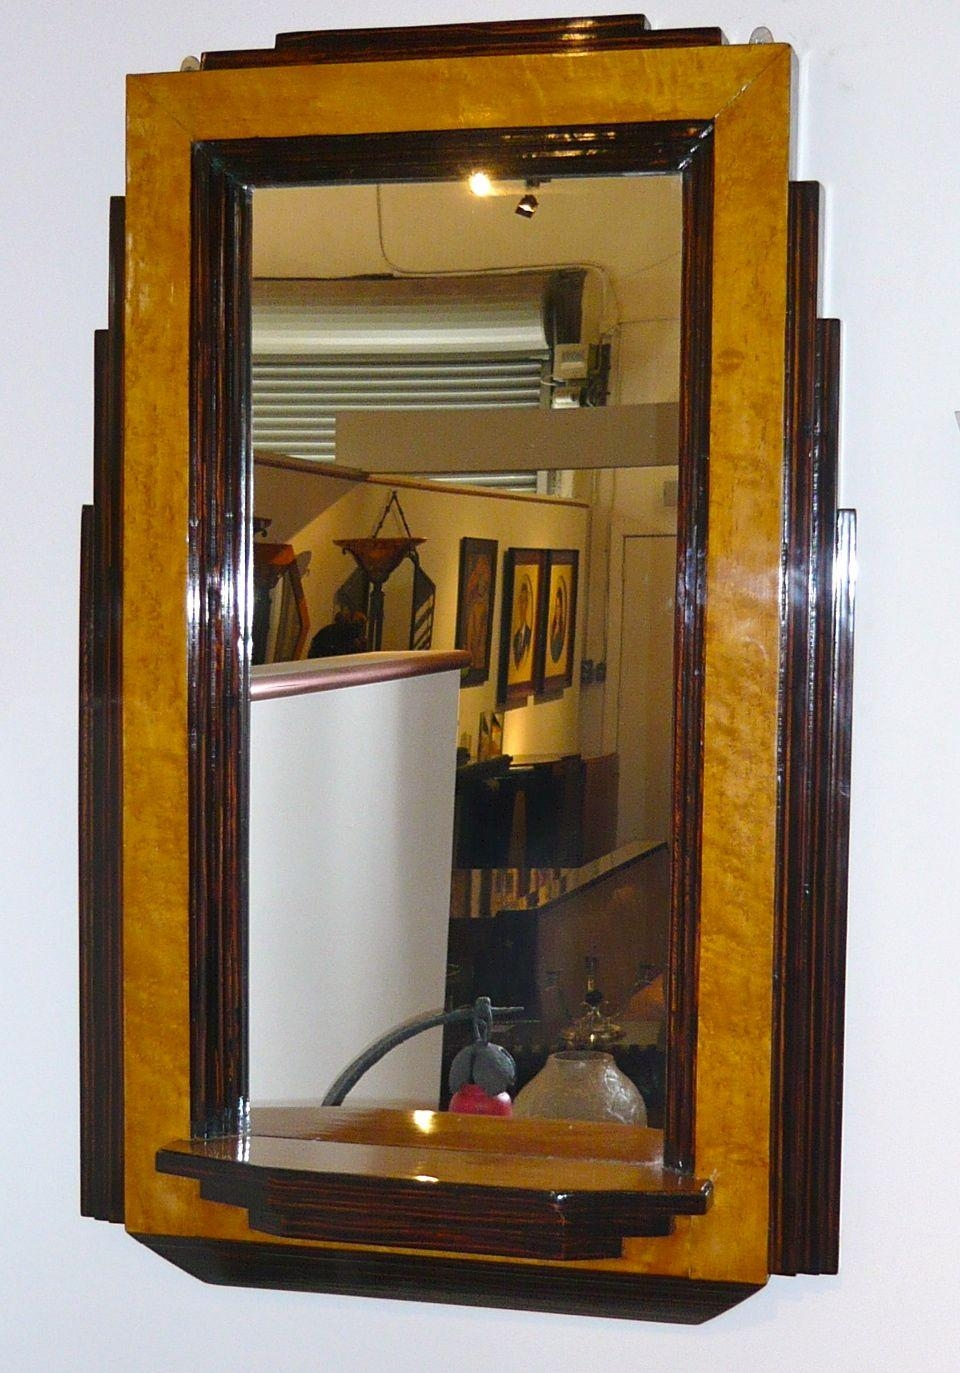 Art Deco Bedroom Furniture For Sale | Art Deco Collection Intended For Large Art Deco Mirror (View 15 of 20)